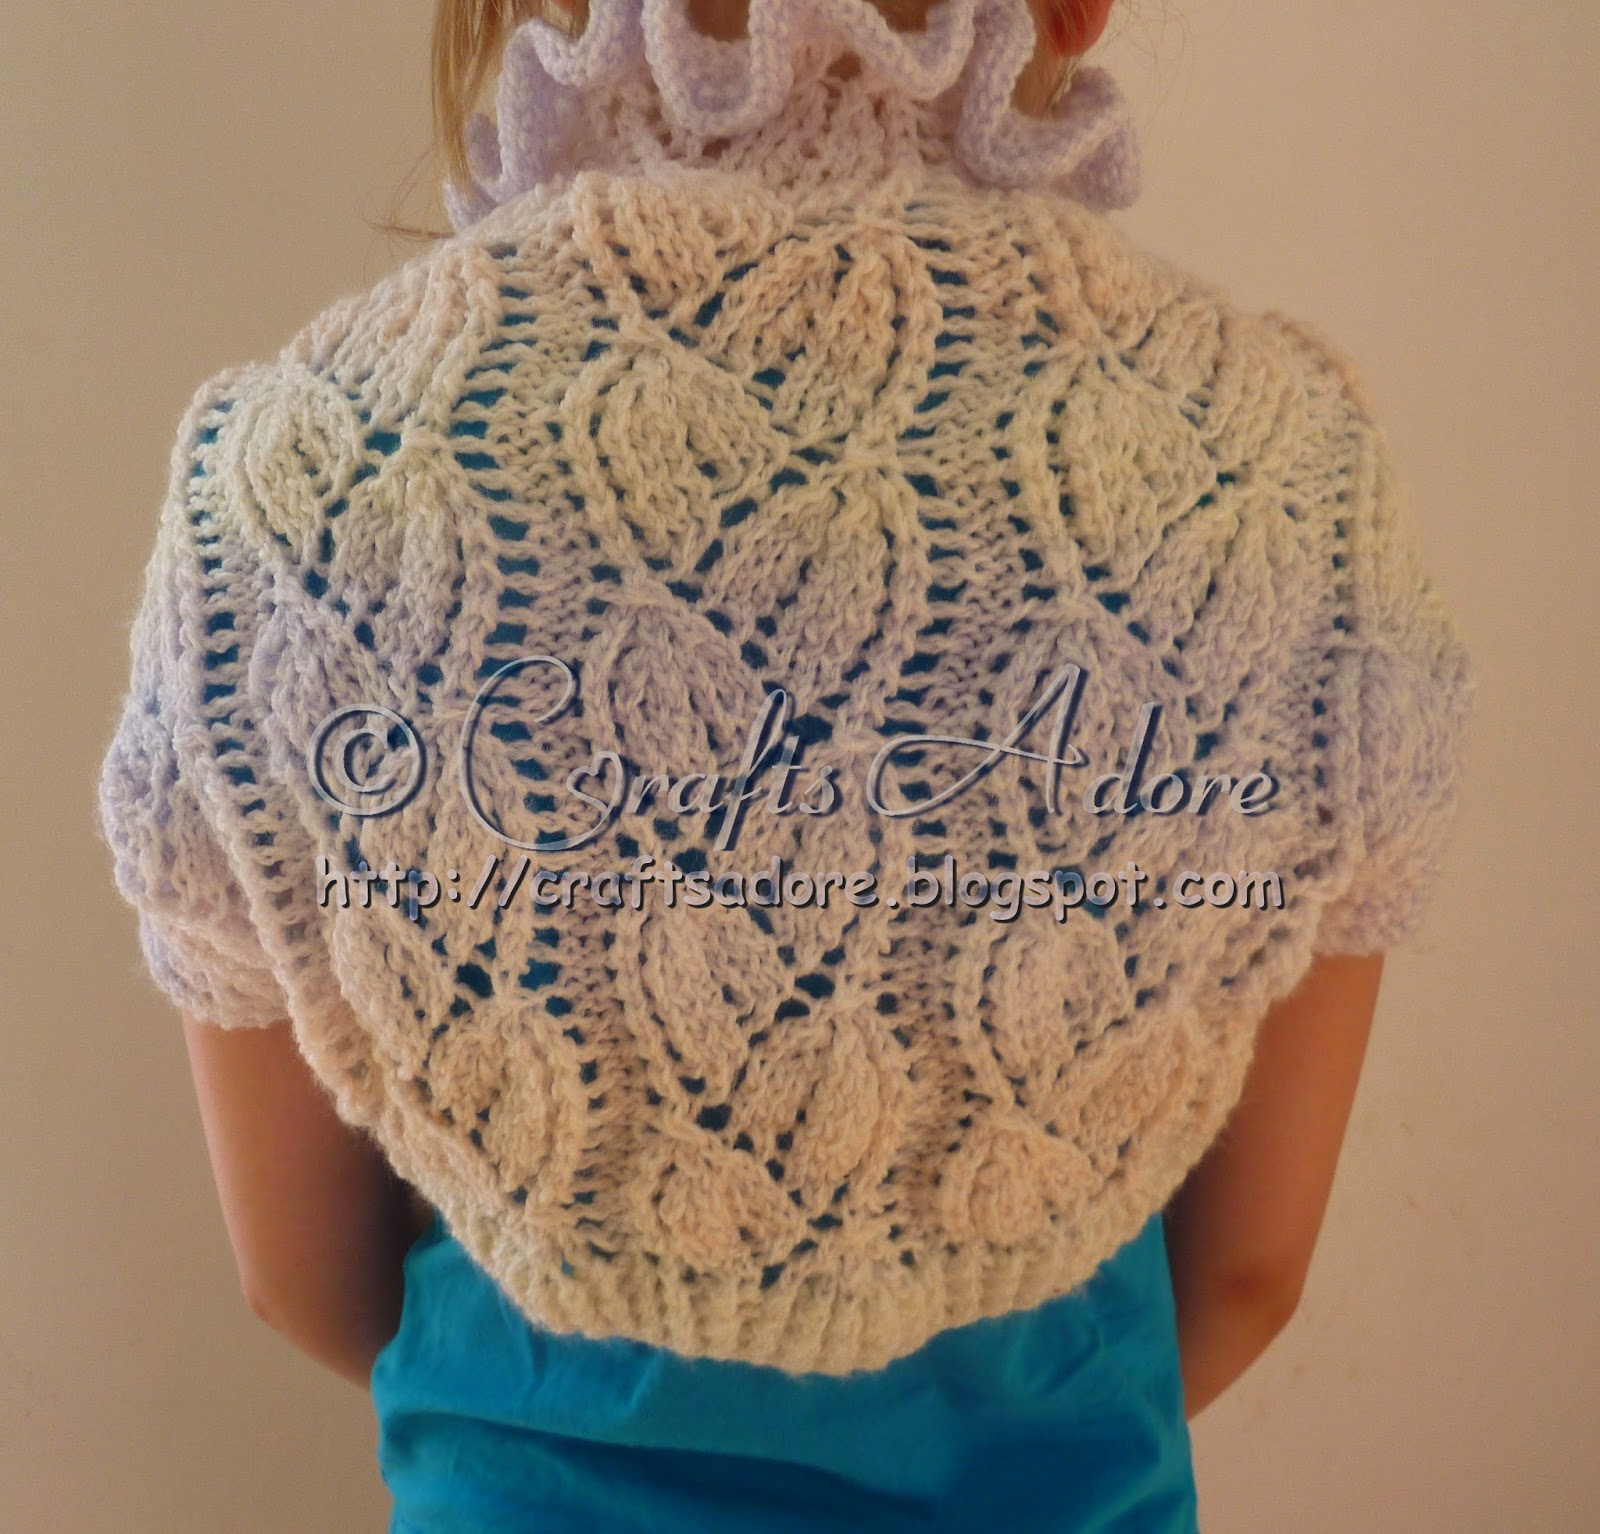 Free Knitting Pattern For Shrug : CraftsAdore: Knitted Girl Lacy Bellflowers Shrug Free Knitting Pattern